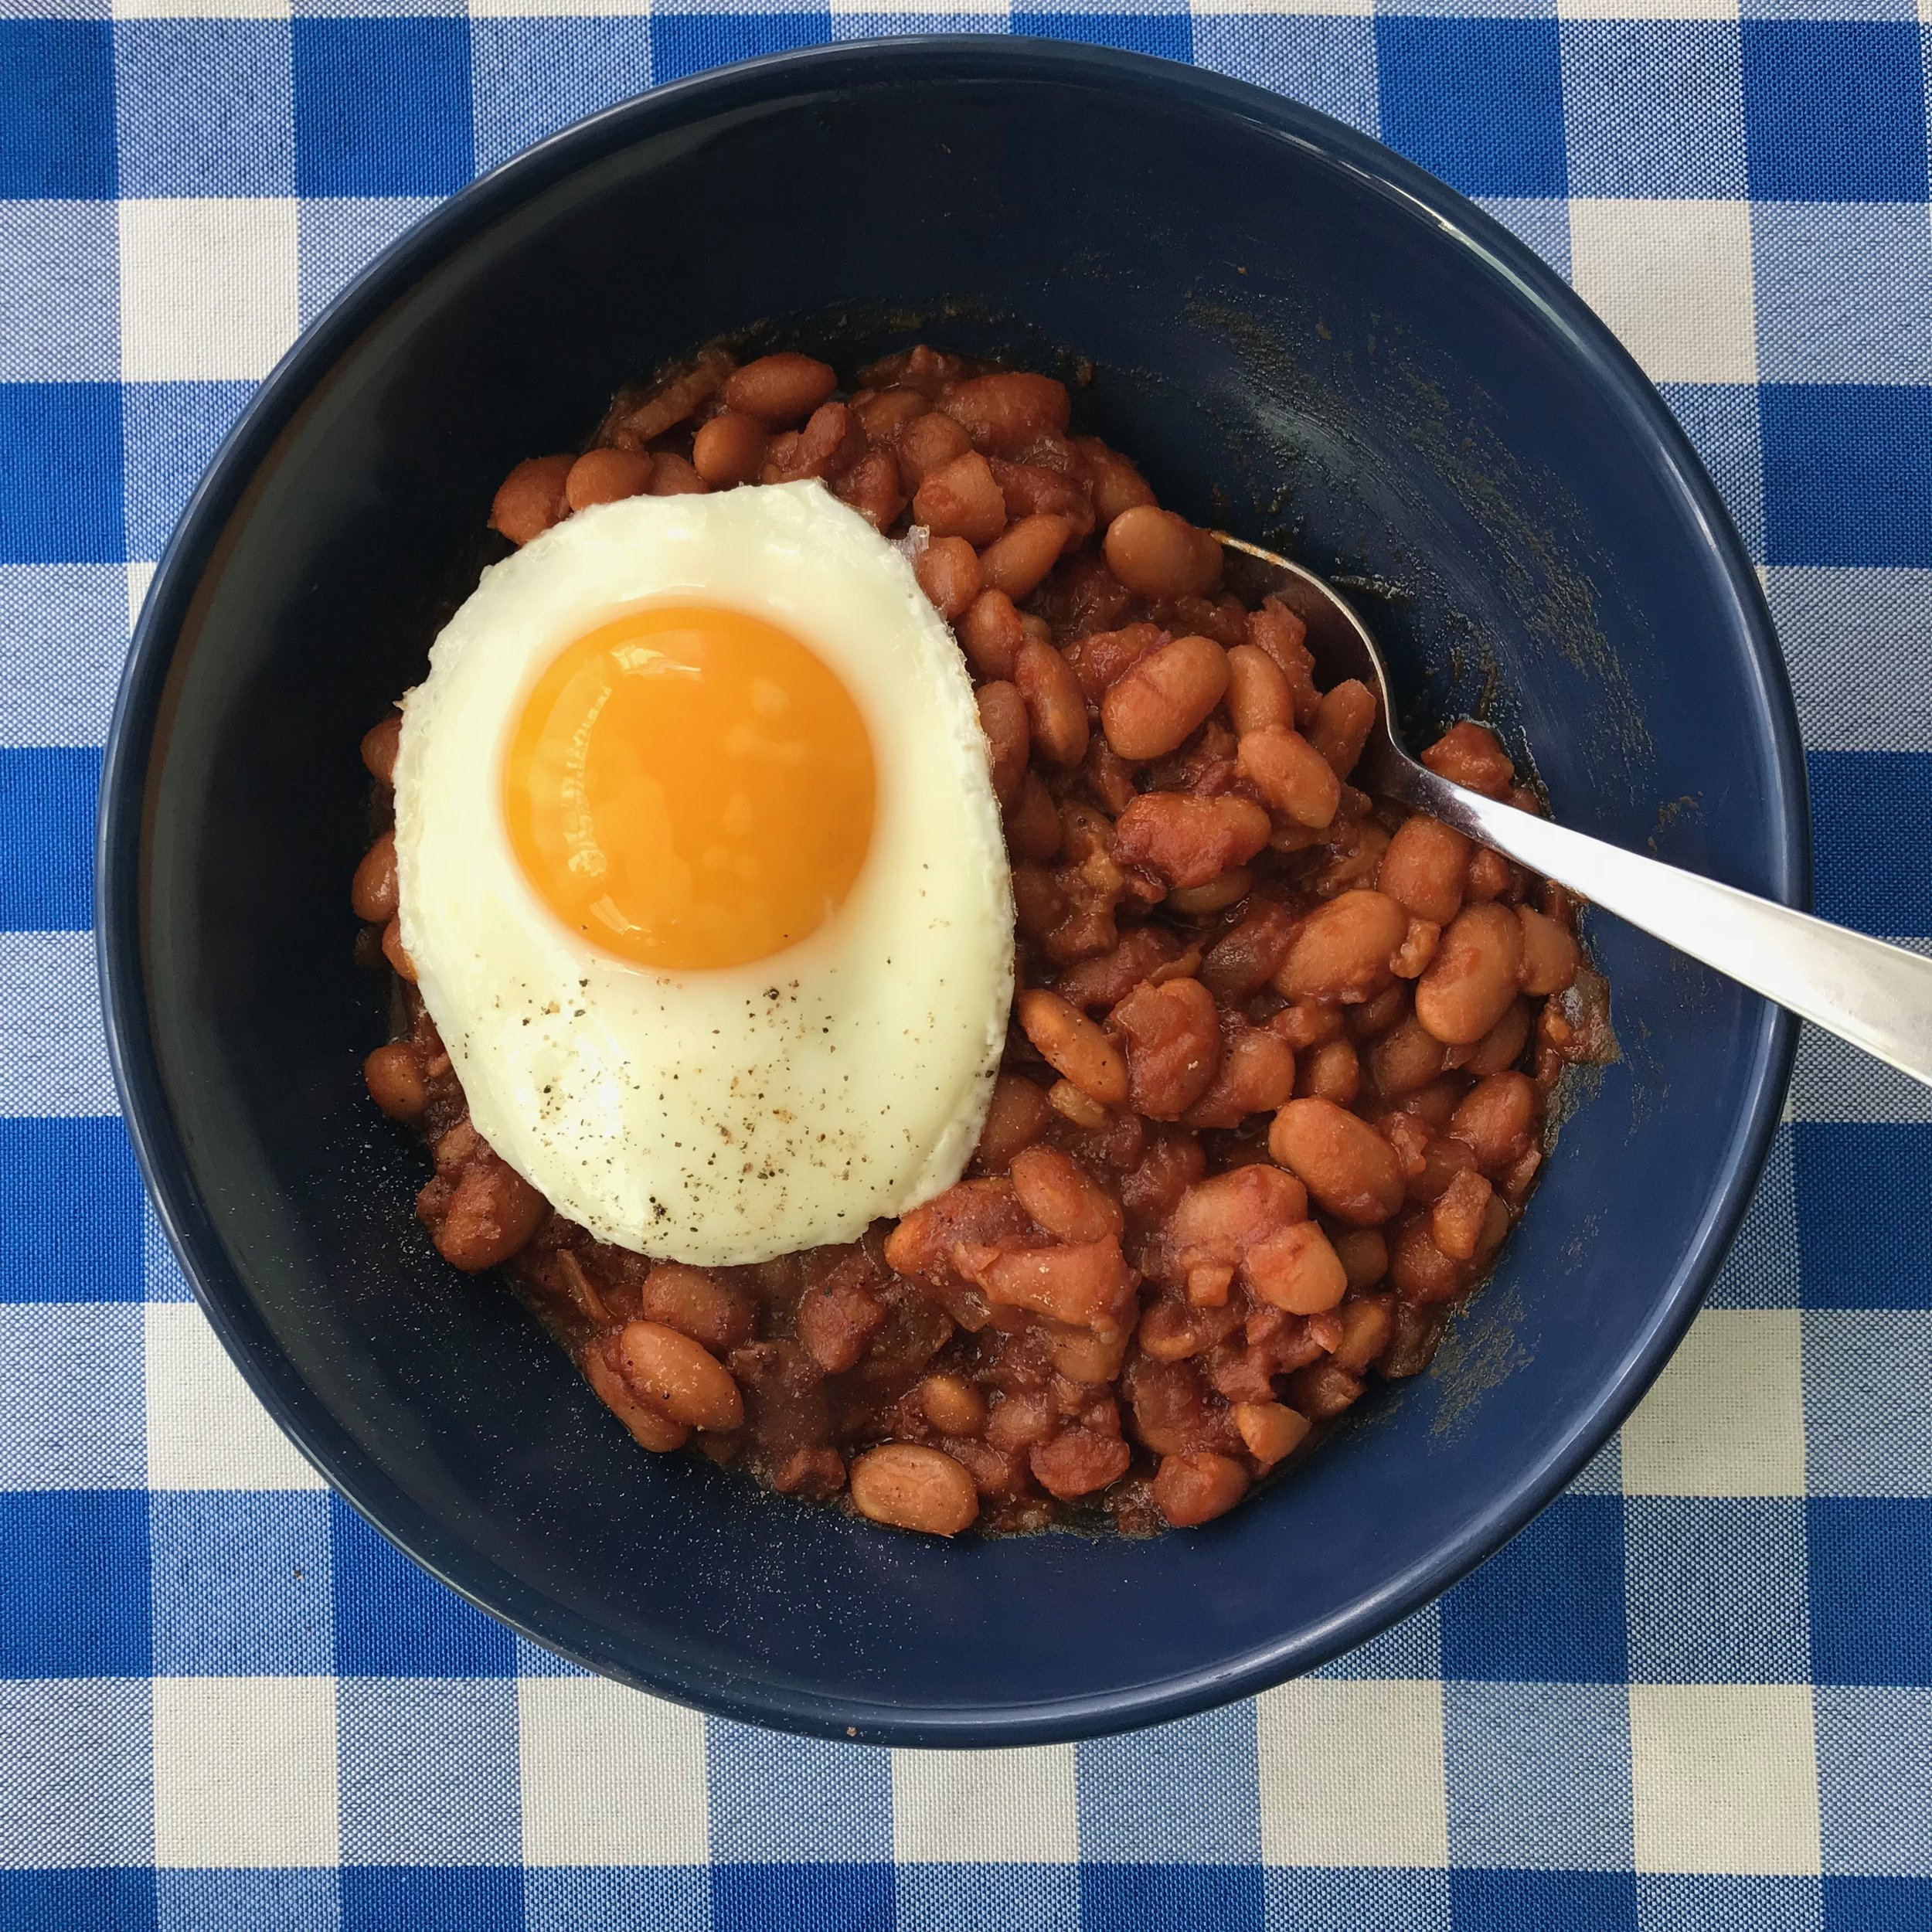 Make baked beans as part of your Sunday night dinner, then top leftovers with a fried egg for a quick weeknight meal another night.